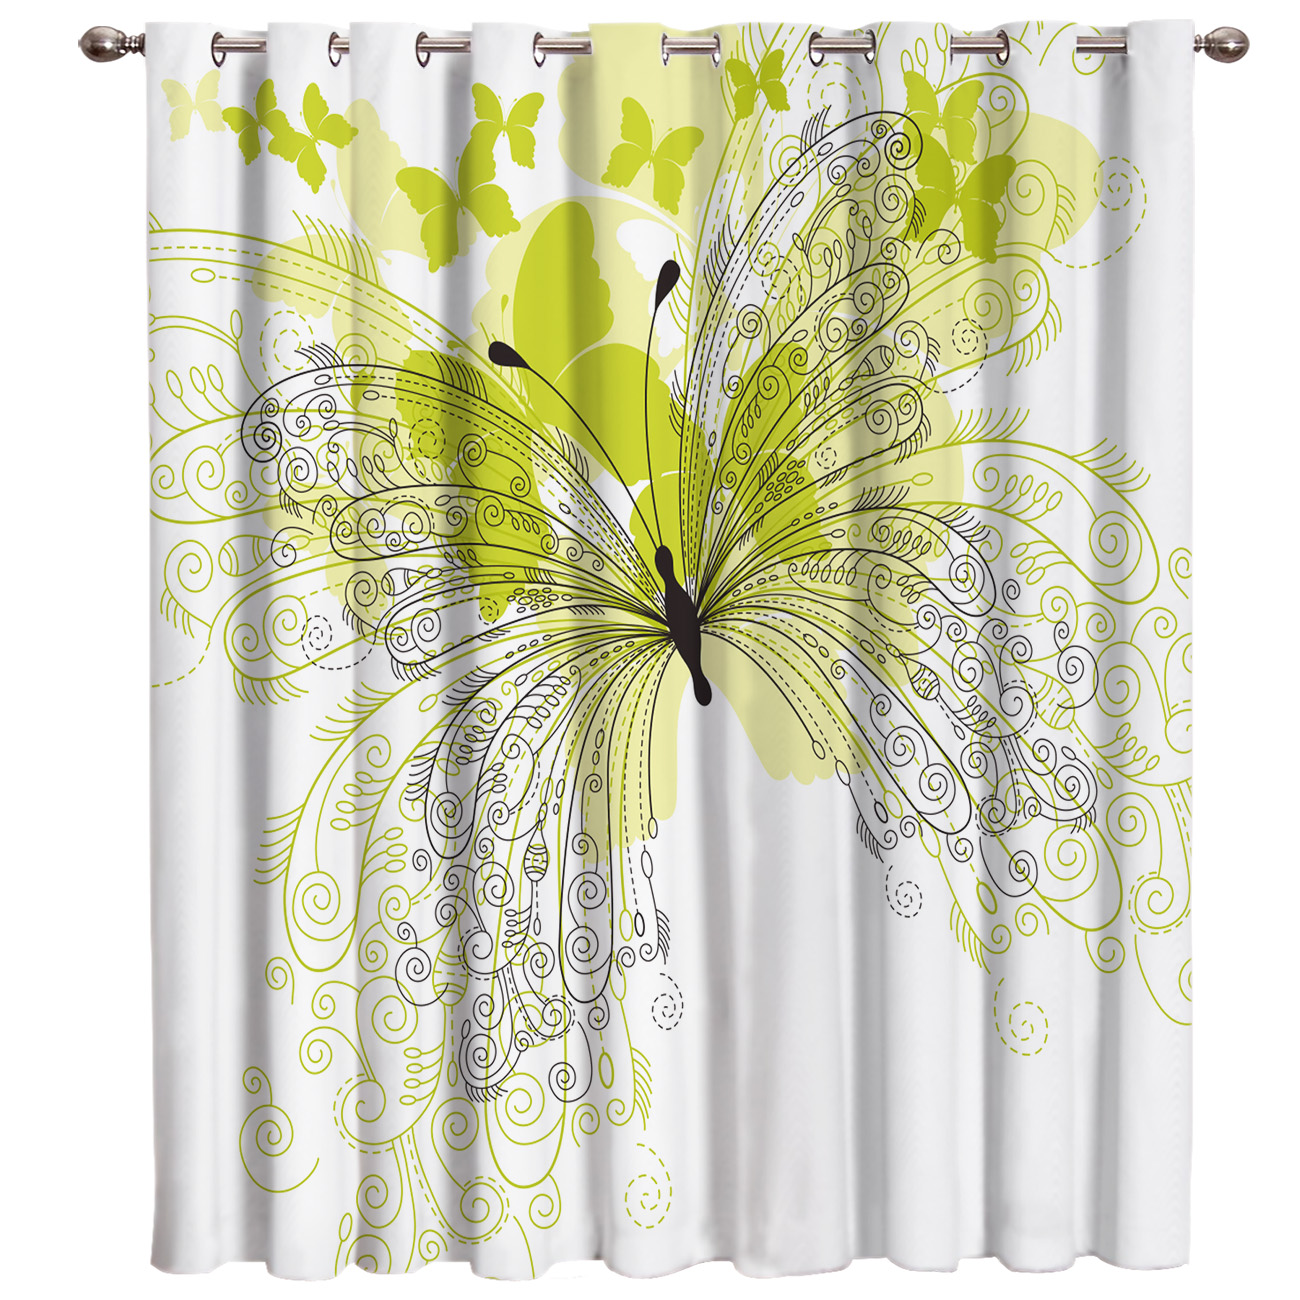 Yellow Flower Butterfly Window Treatments Curtains Valance Room Curtains Large Window Window Curtains Dark Curtain Lights Living